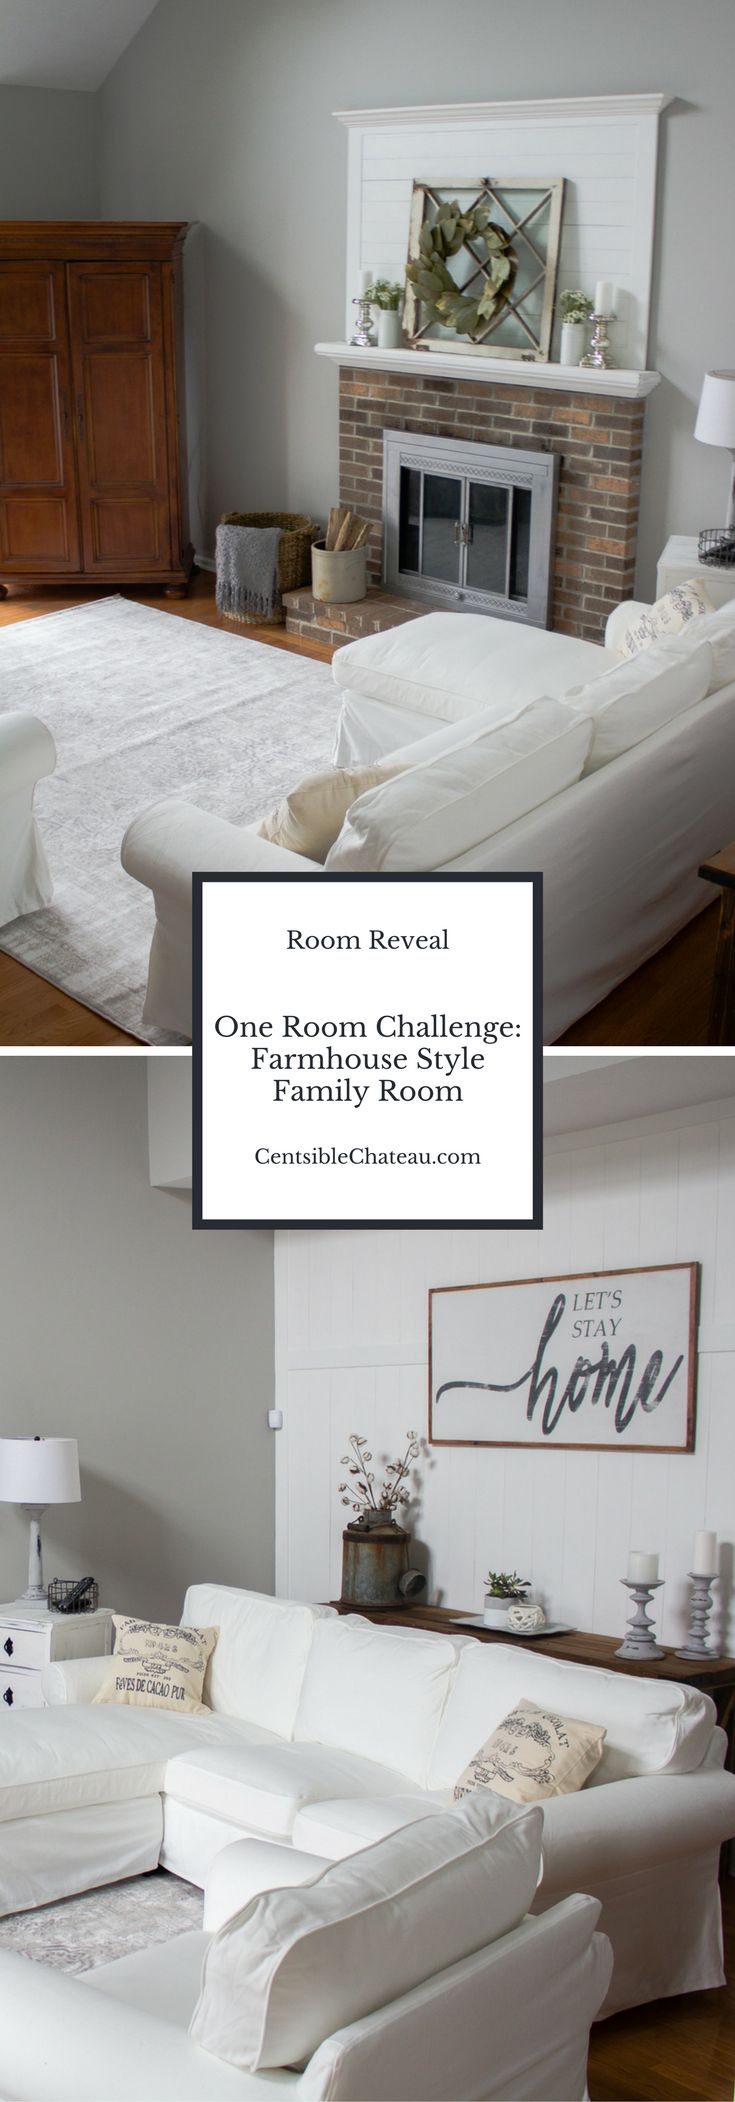 In our One Room Challenge we created our dream farmhouse style family room while staying in our small budget. Click to learn more about the wood wall, furnishings, chalk paint projects, decor sources and custom wood sign. www.centsiblechateau.com